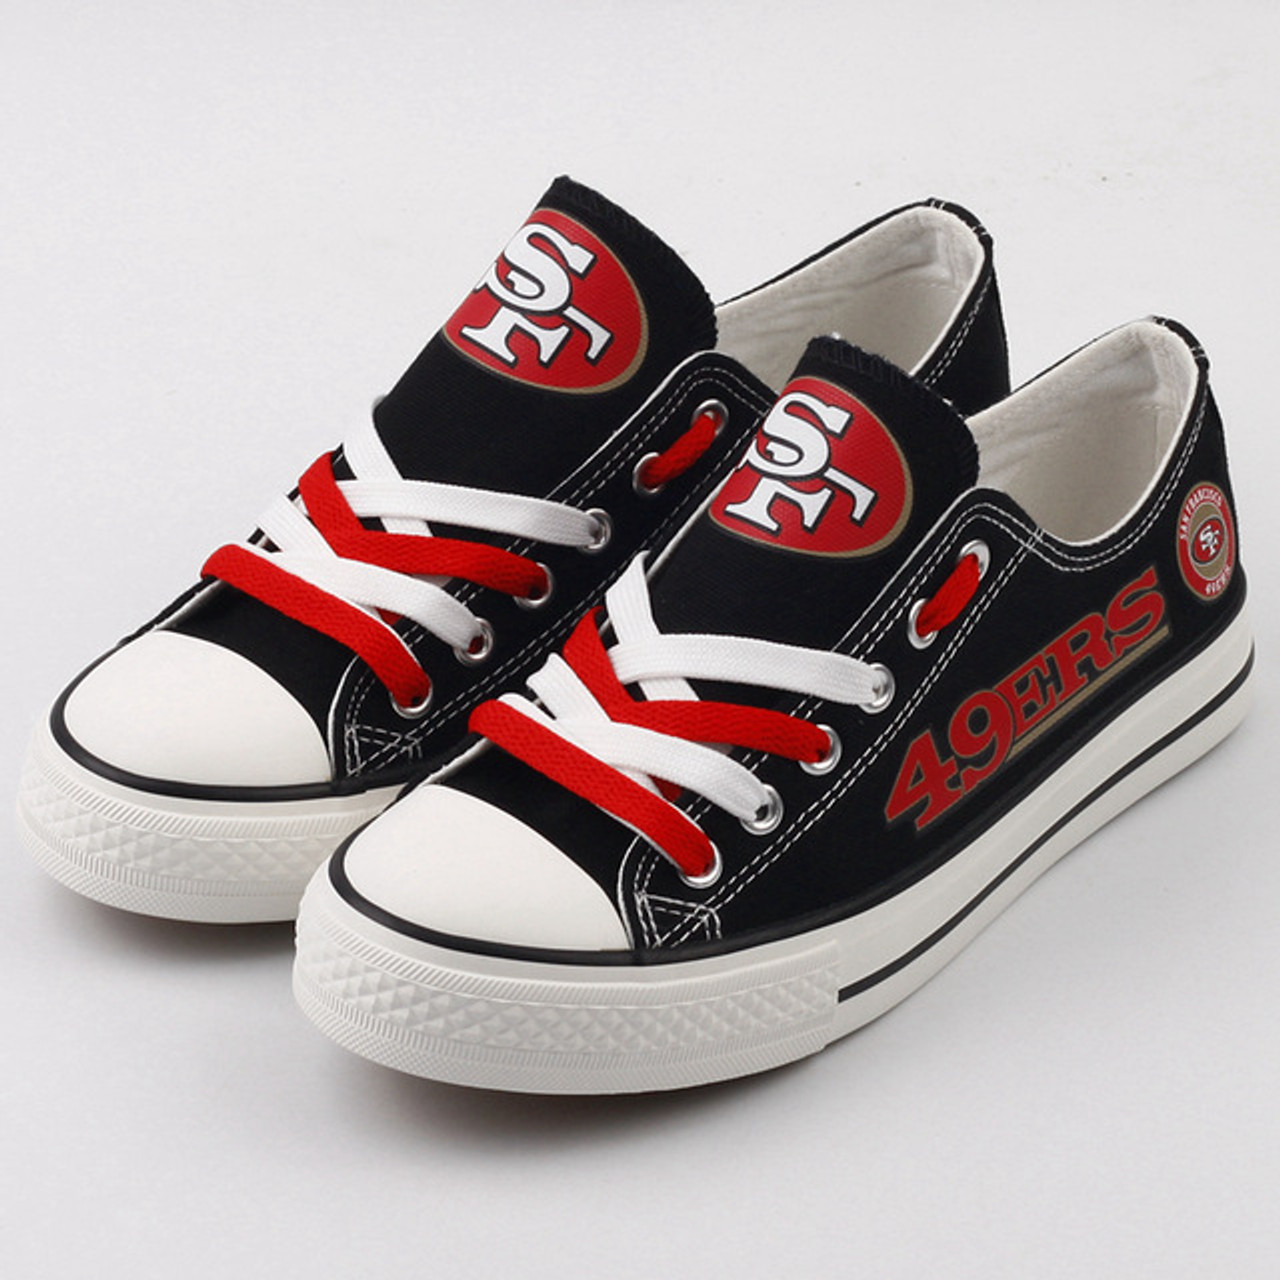 new officially licensed n f l san francisco 49ers running shoes mens or womens roshe style light weight new official n f l san francisco 49ers running shoes mens or womens roshe style light weight sport premium running shoes with official 49ers team c